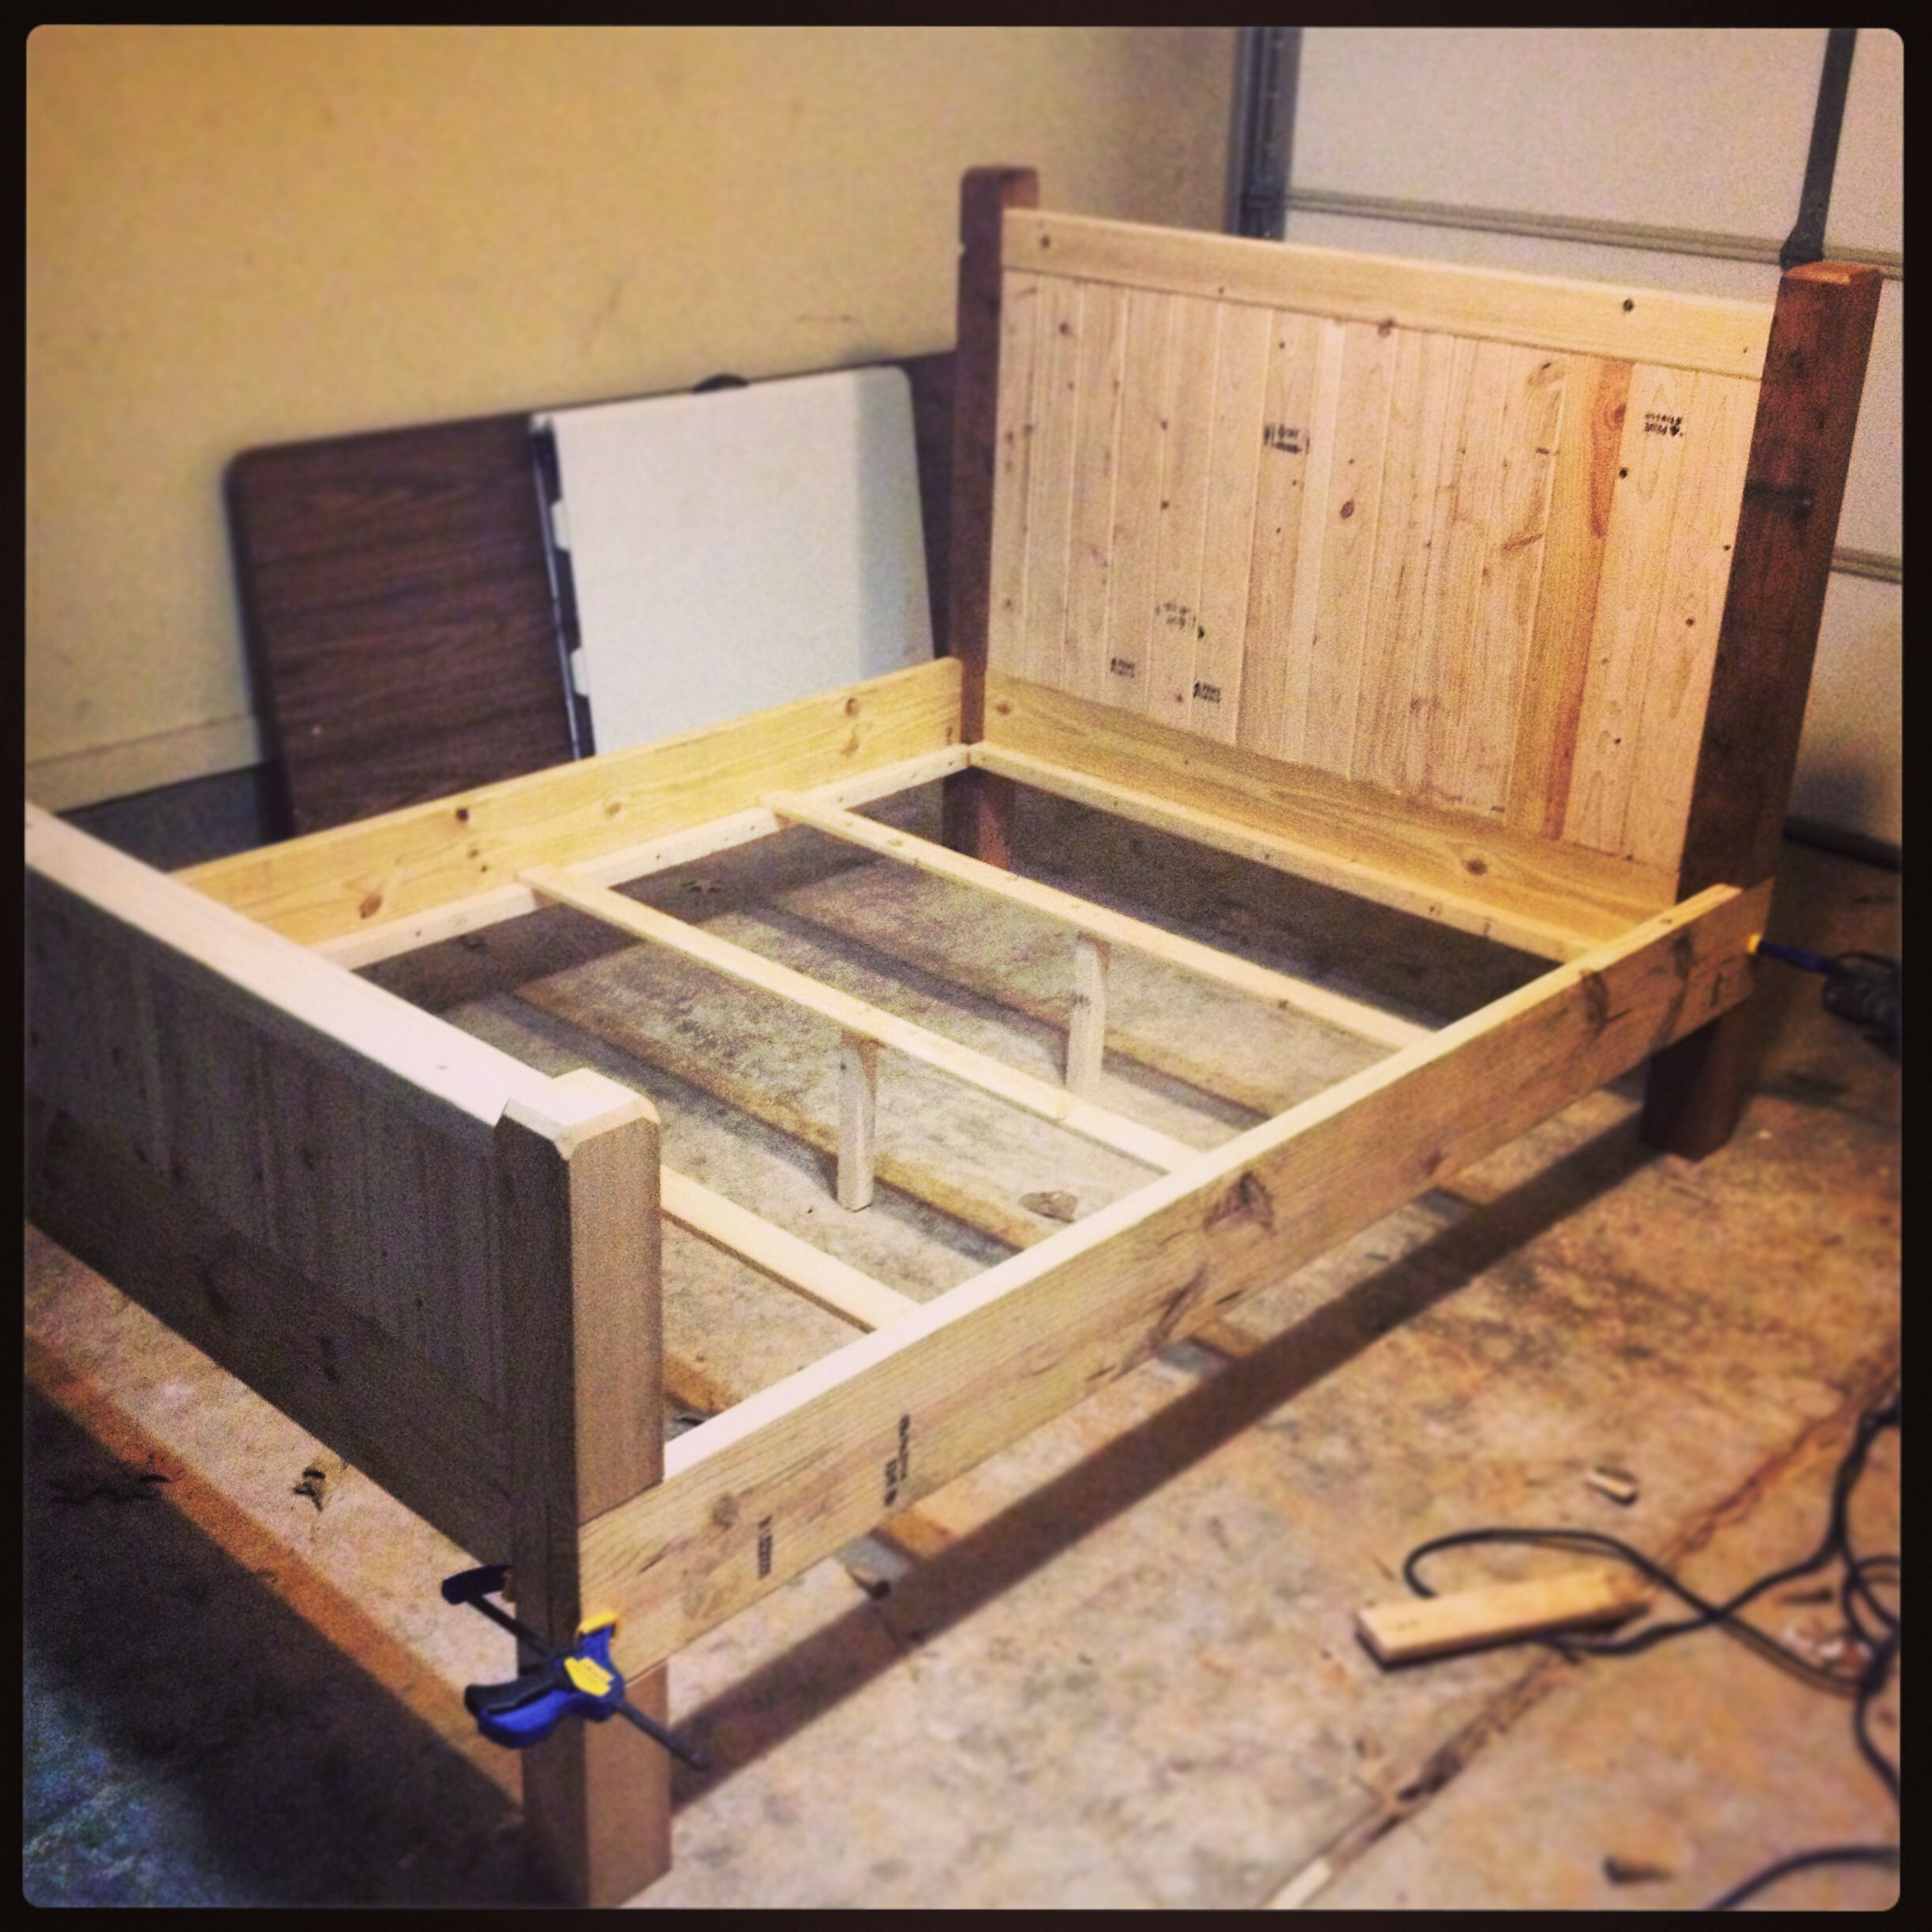 DIY full size bed frame almost finished, made with 2x4s ...